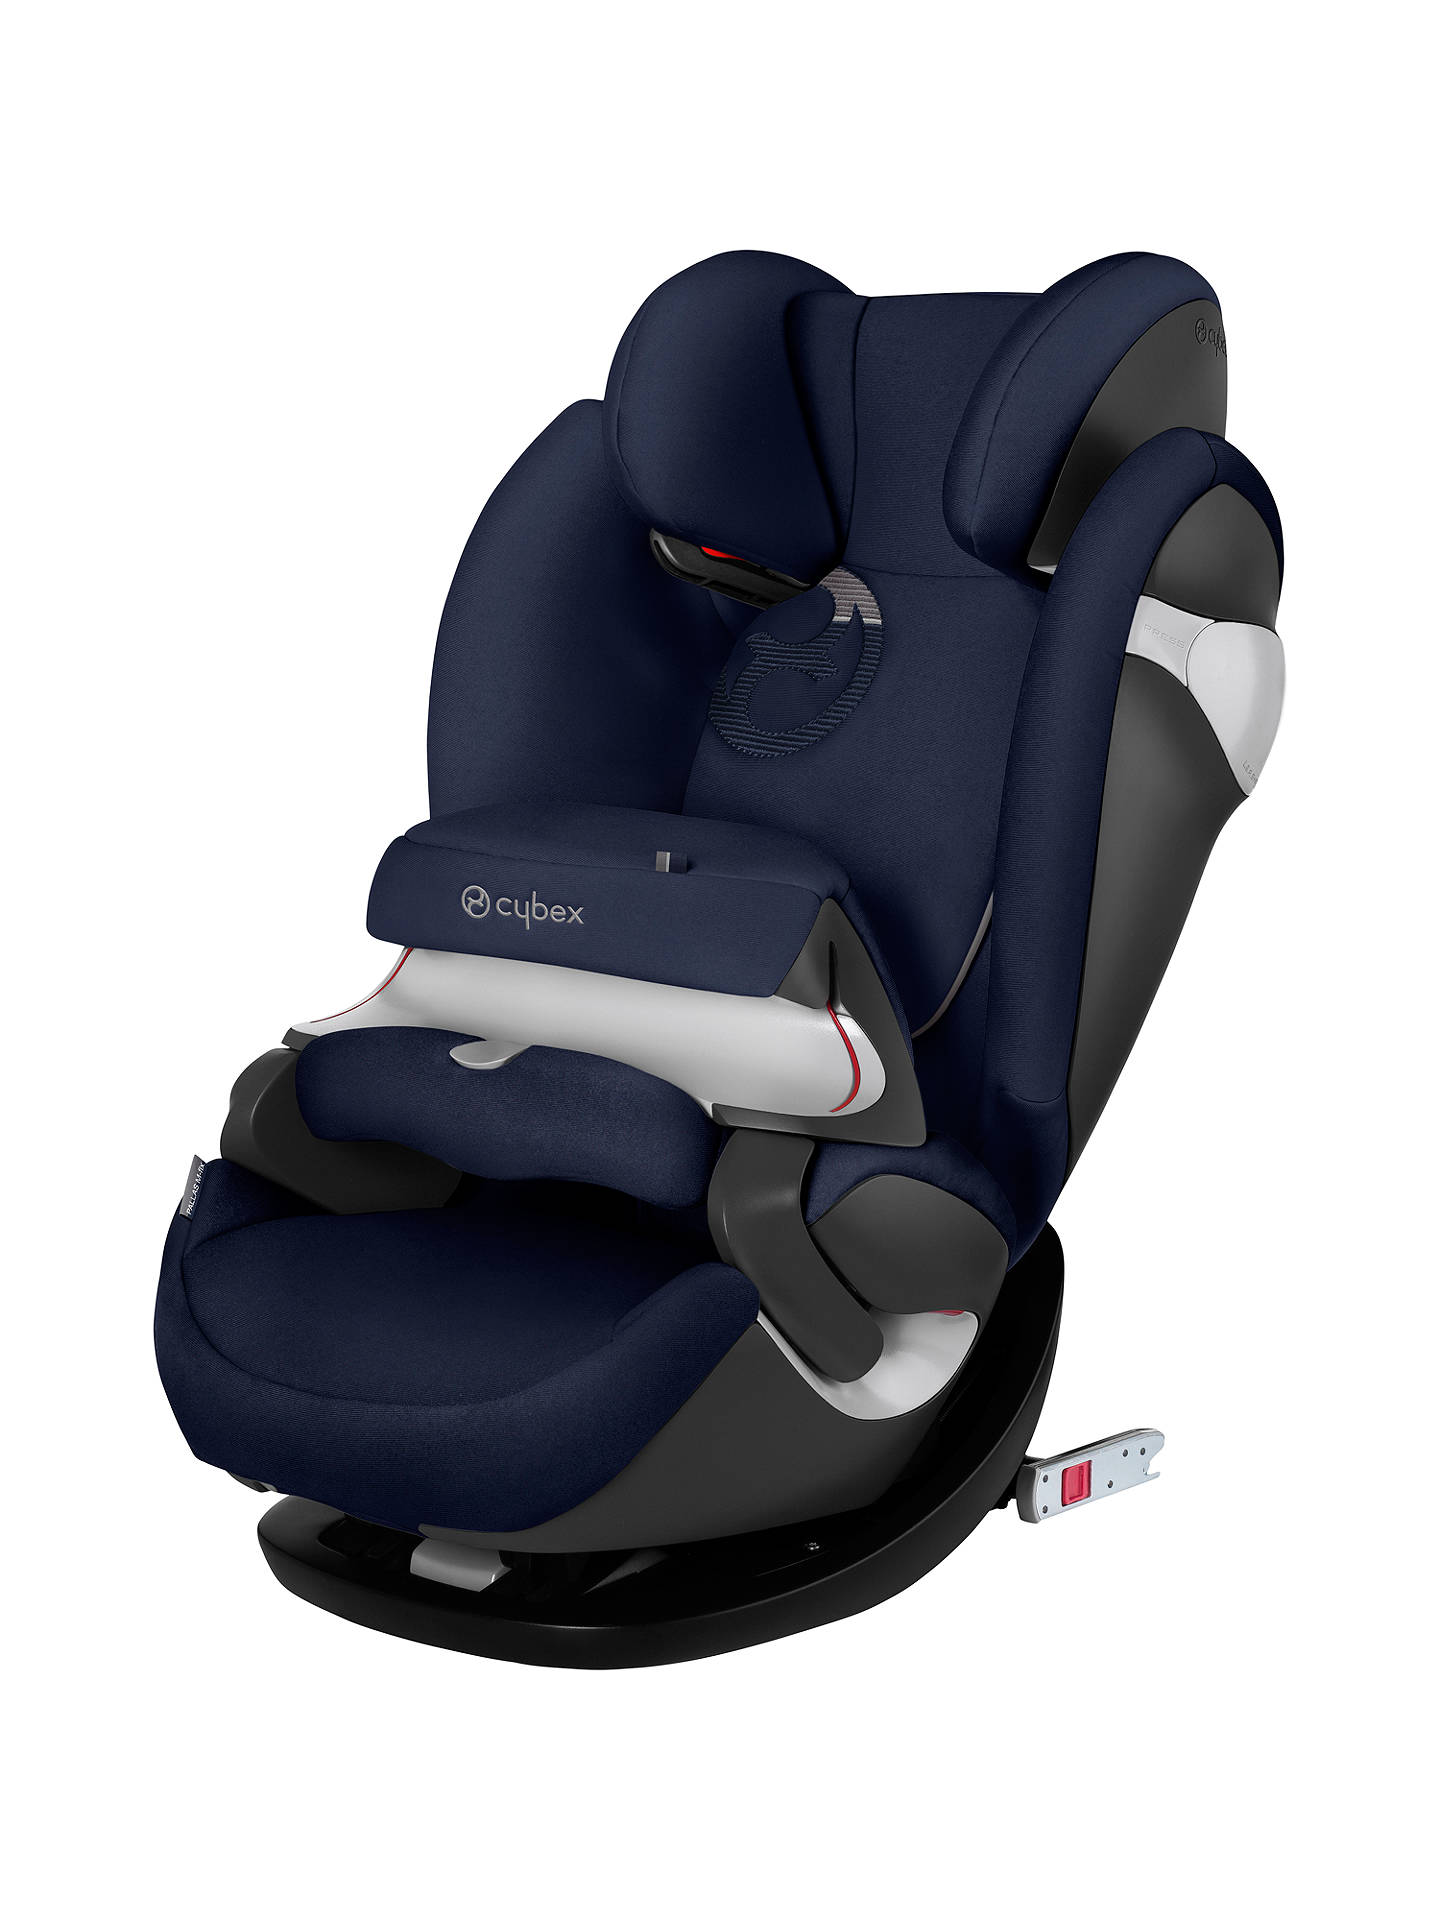 cybex pallas m fix group 1 2 3 car seat midnight blue at john lewis partners. Black Bedroom Furniture Sets. Home Design Ideas